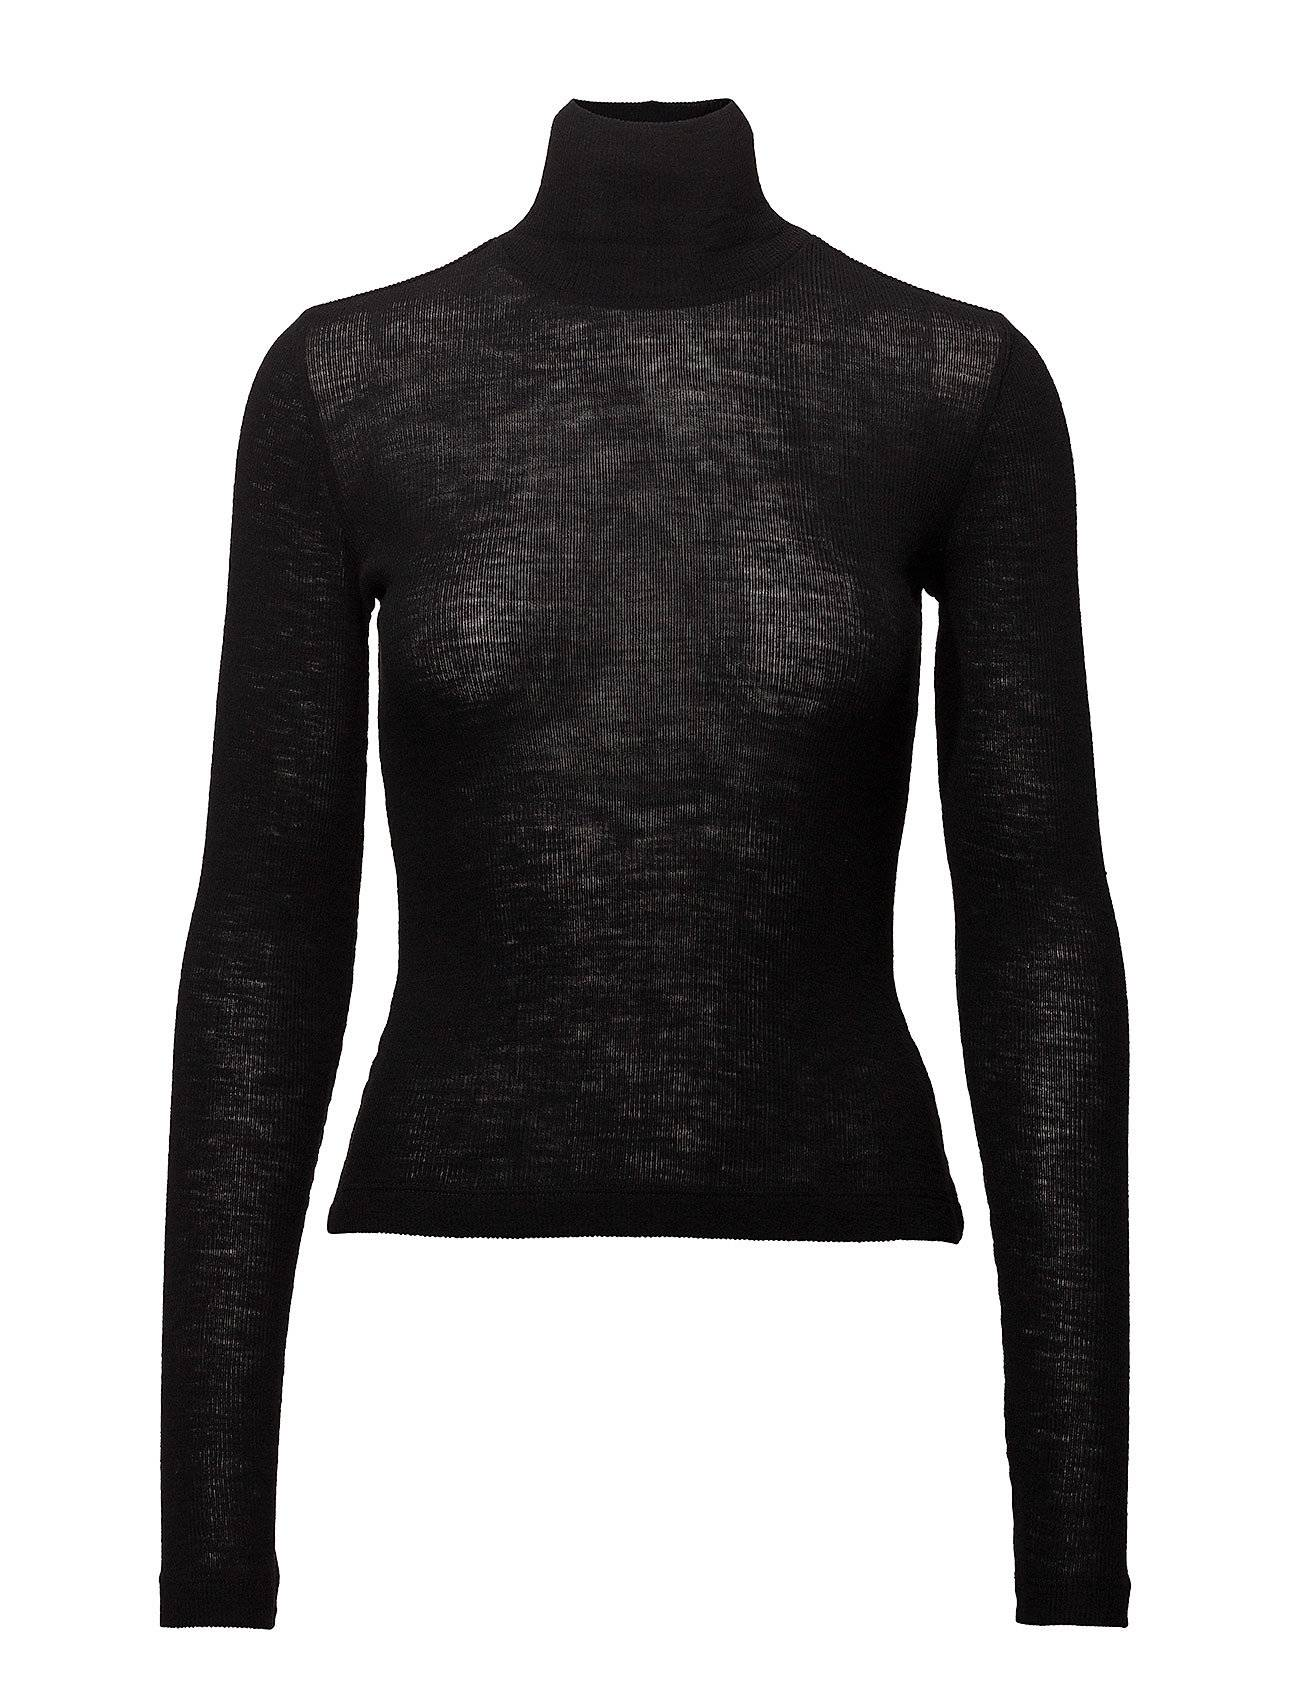 T by Alexander Wang Sheer Wooly Rib L/S Fitted Turtleneck